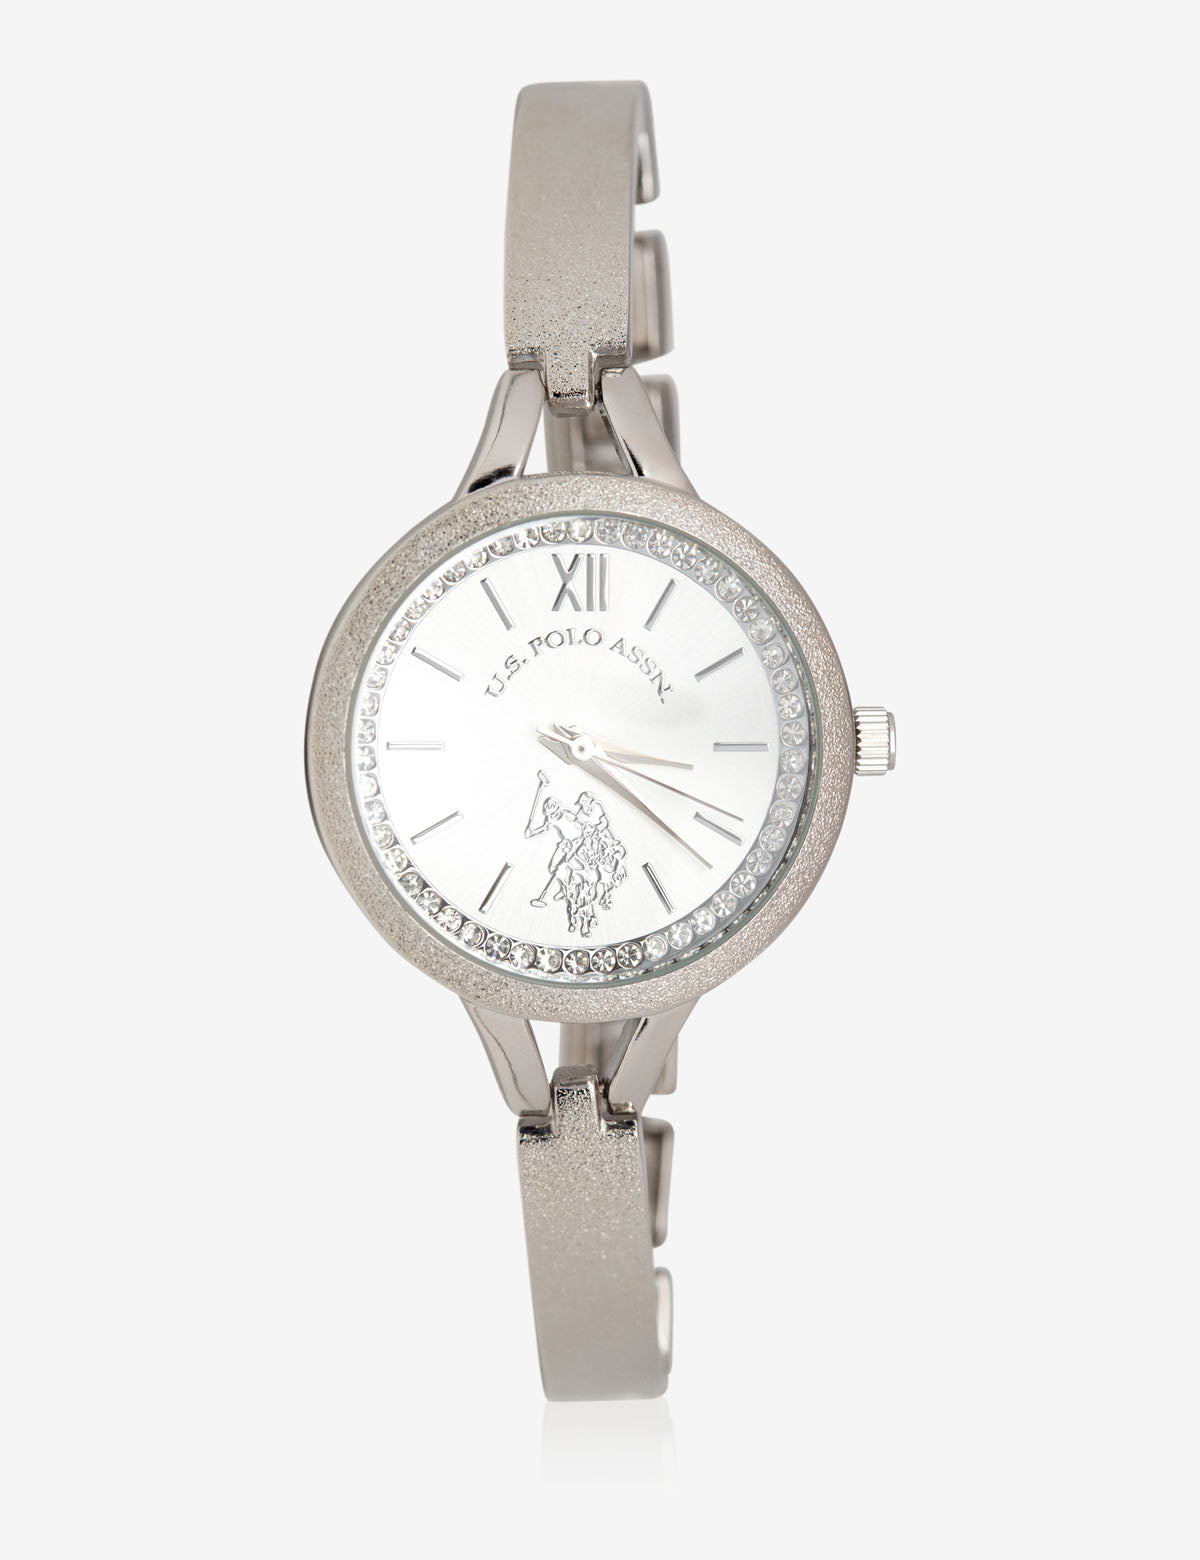 USPA WOMEN'S SILVER & RHINESTONE STUDDED WATCH